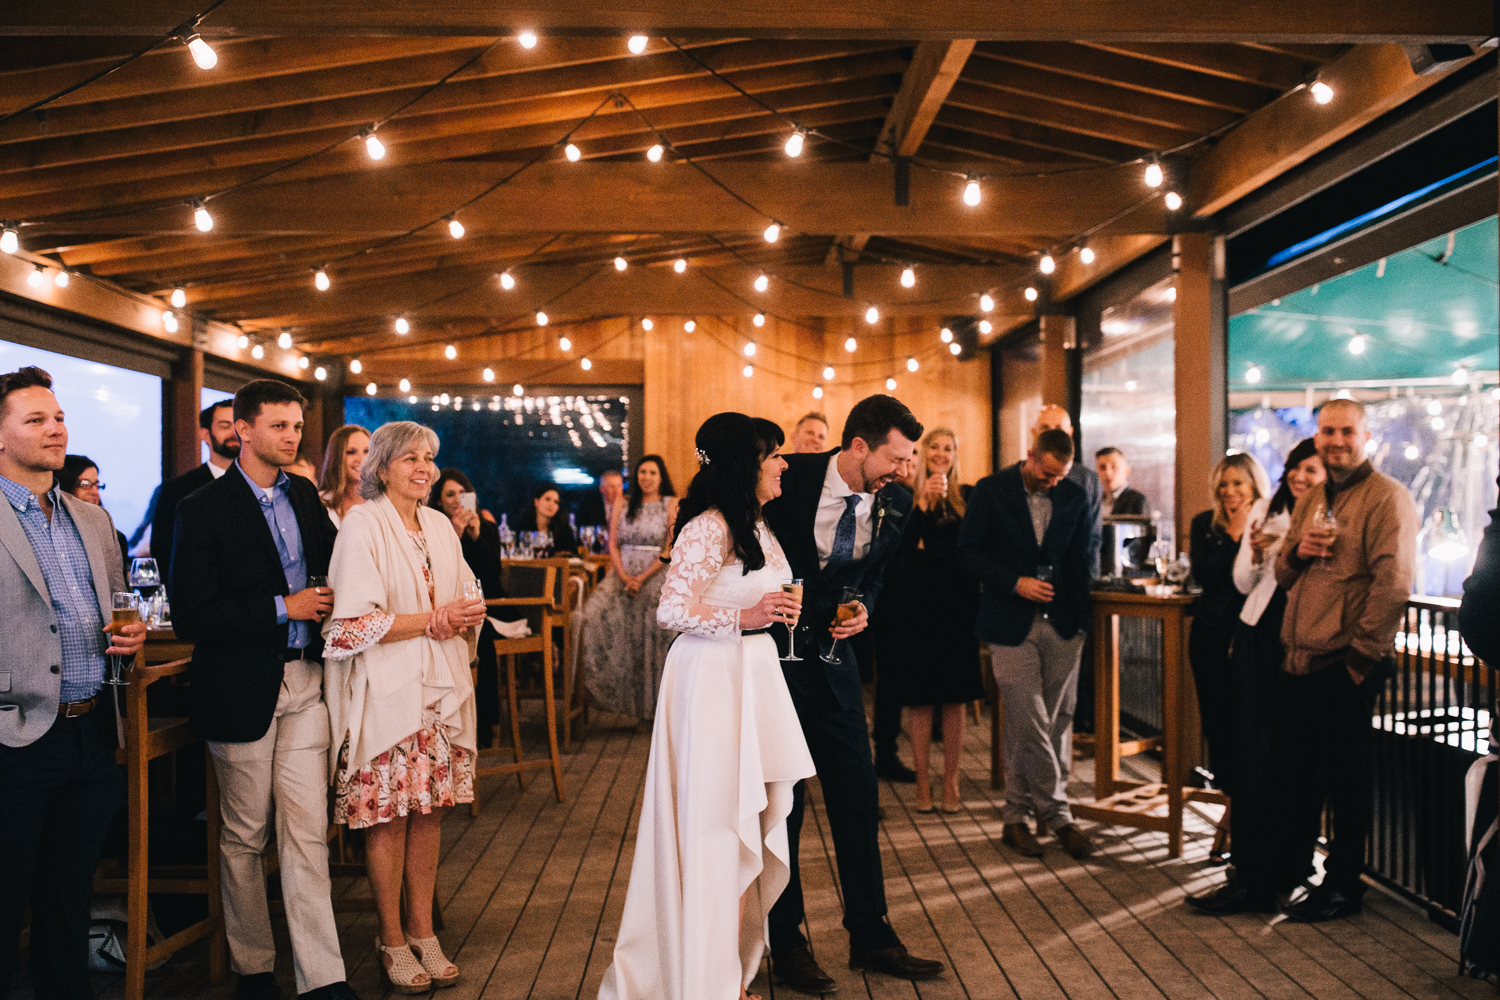 2019_05_ 182019.05.19 Lisa + Eddie South Bay Wedding Blog Photos Edited For Web 0136.jpg